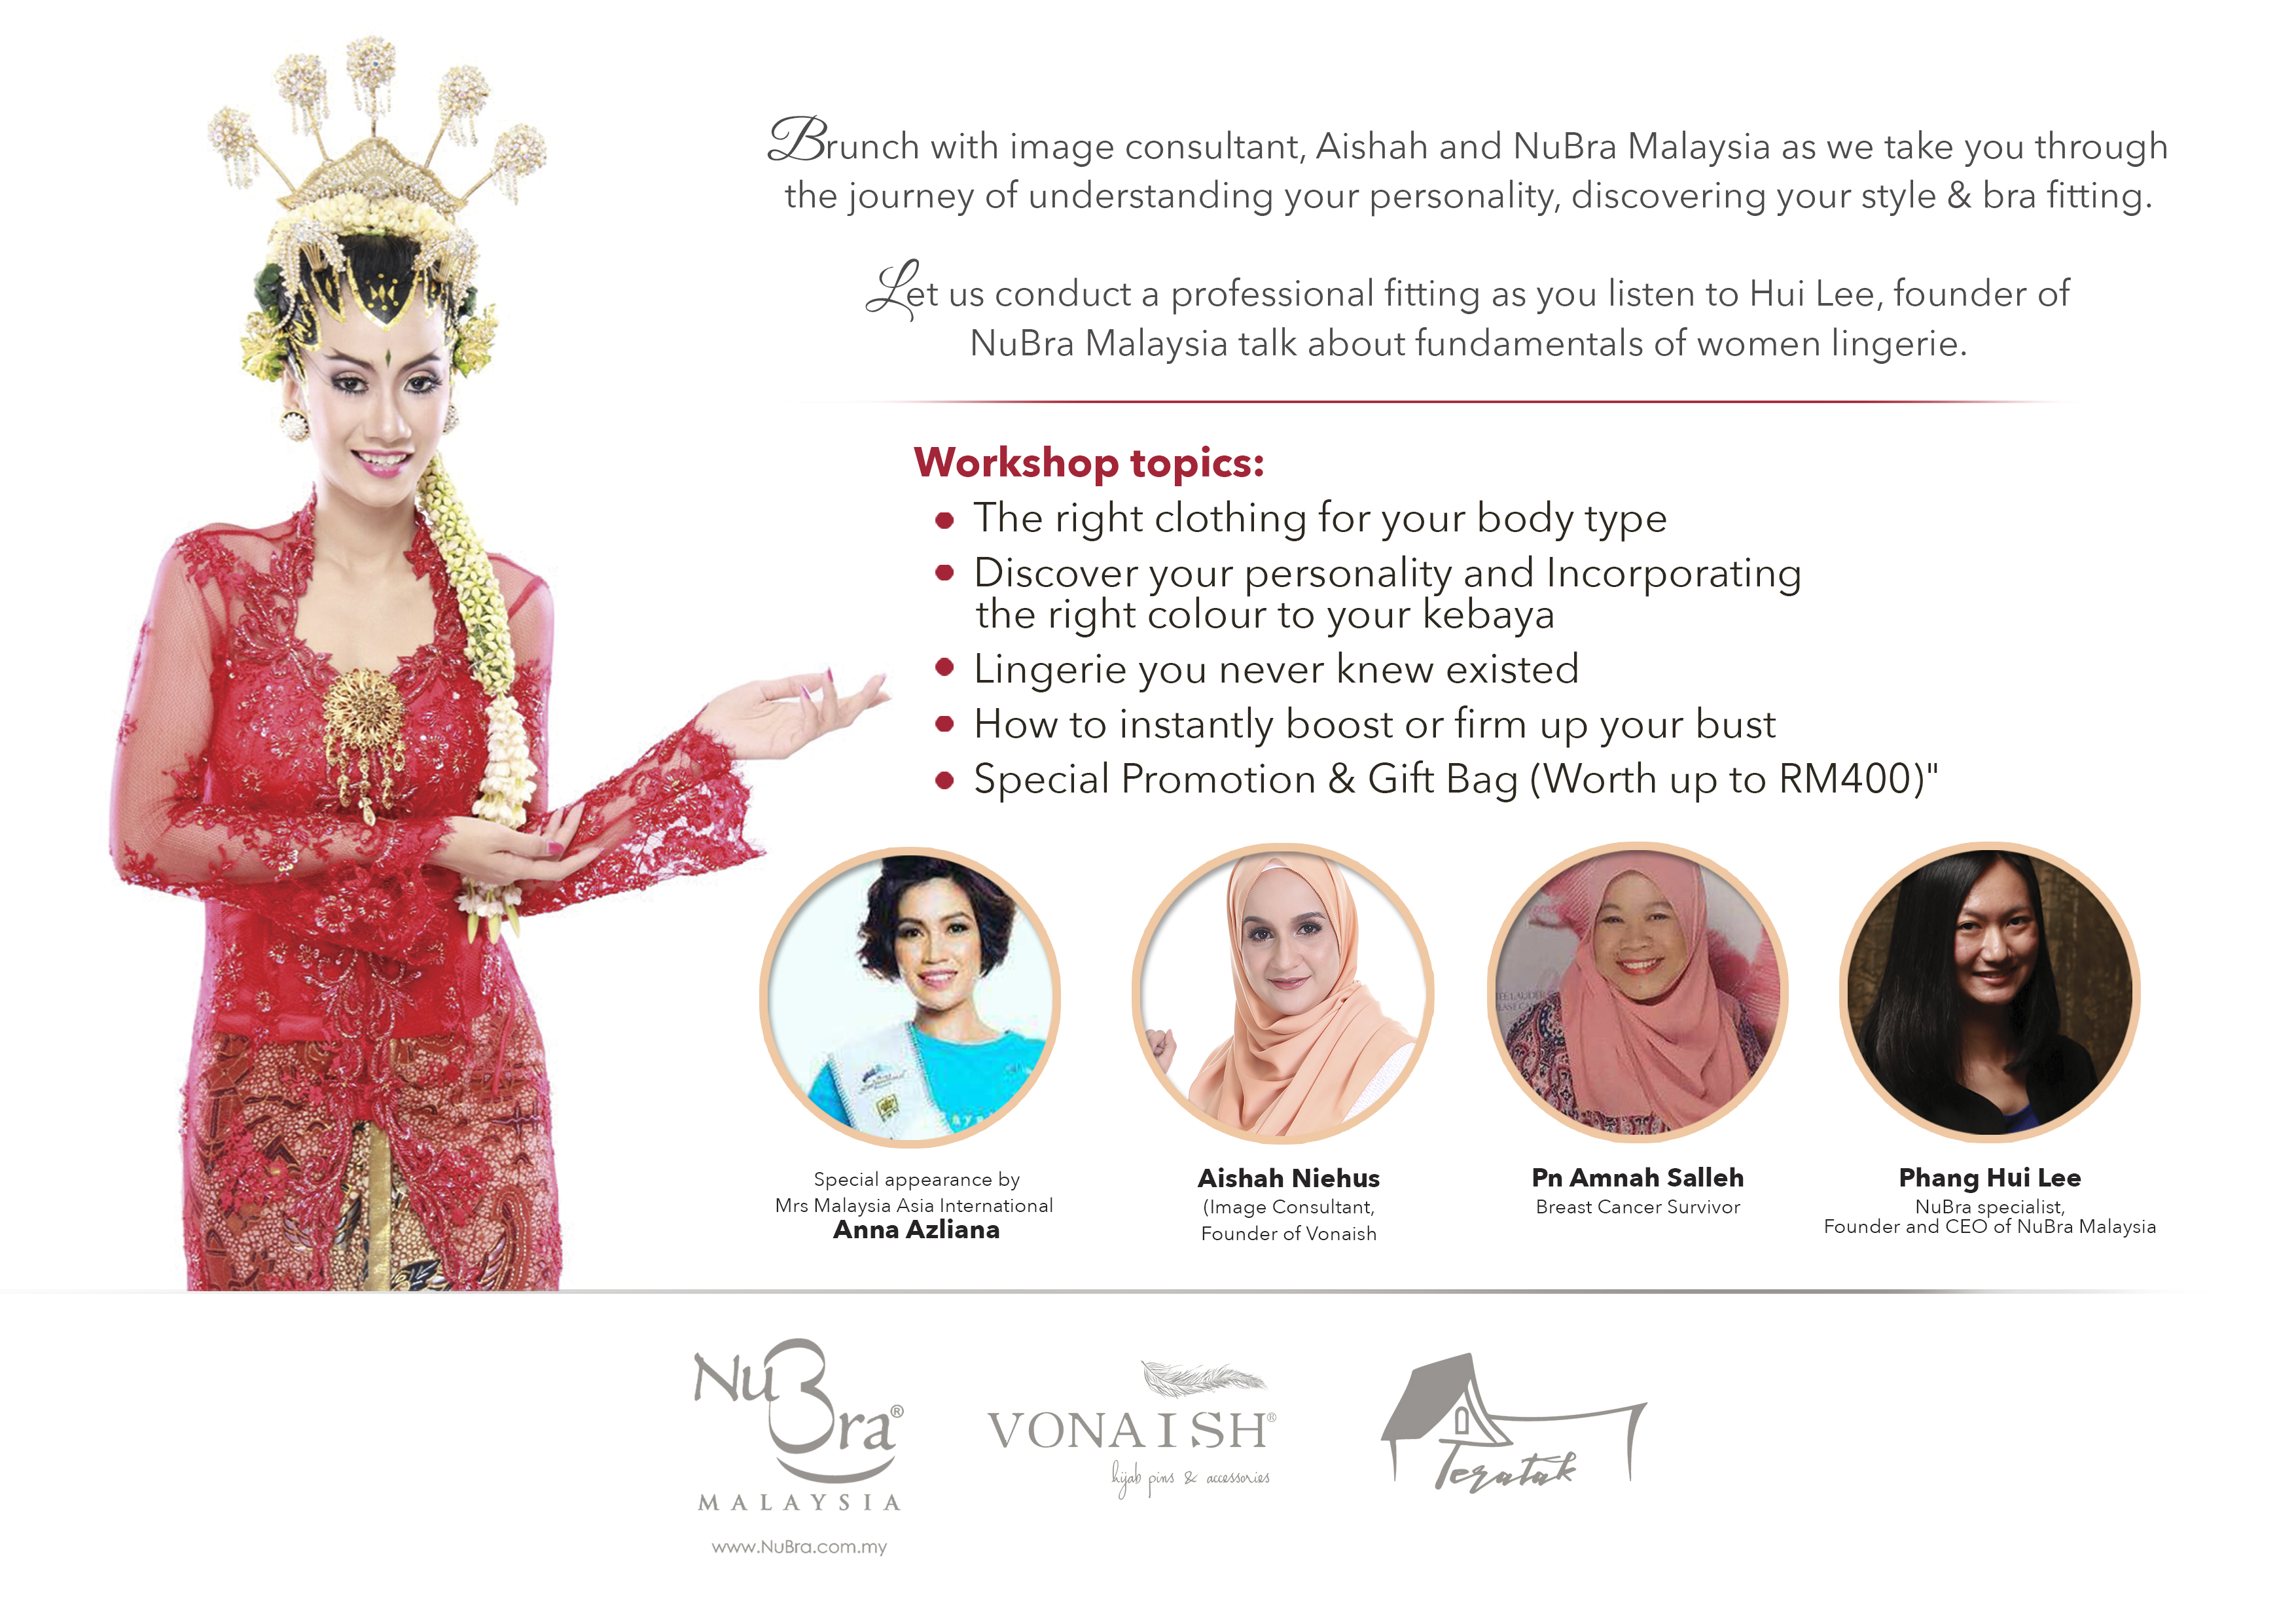 Rock Your Kebaya   Discover Your Inner Secrets. 28 Dec 2017. Previous  Increase Your Butt Size With The Right Silicone Padded Panties 0c5cee241e